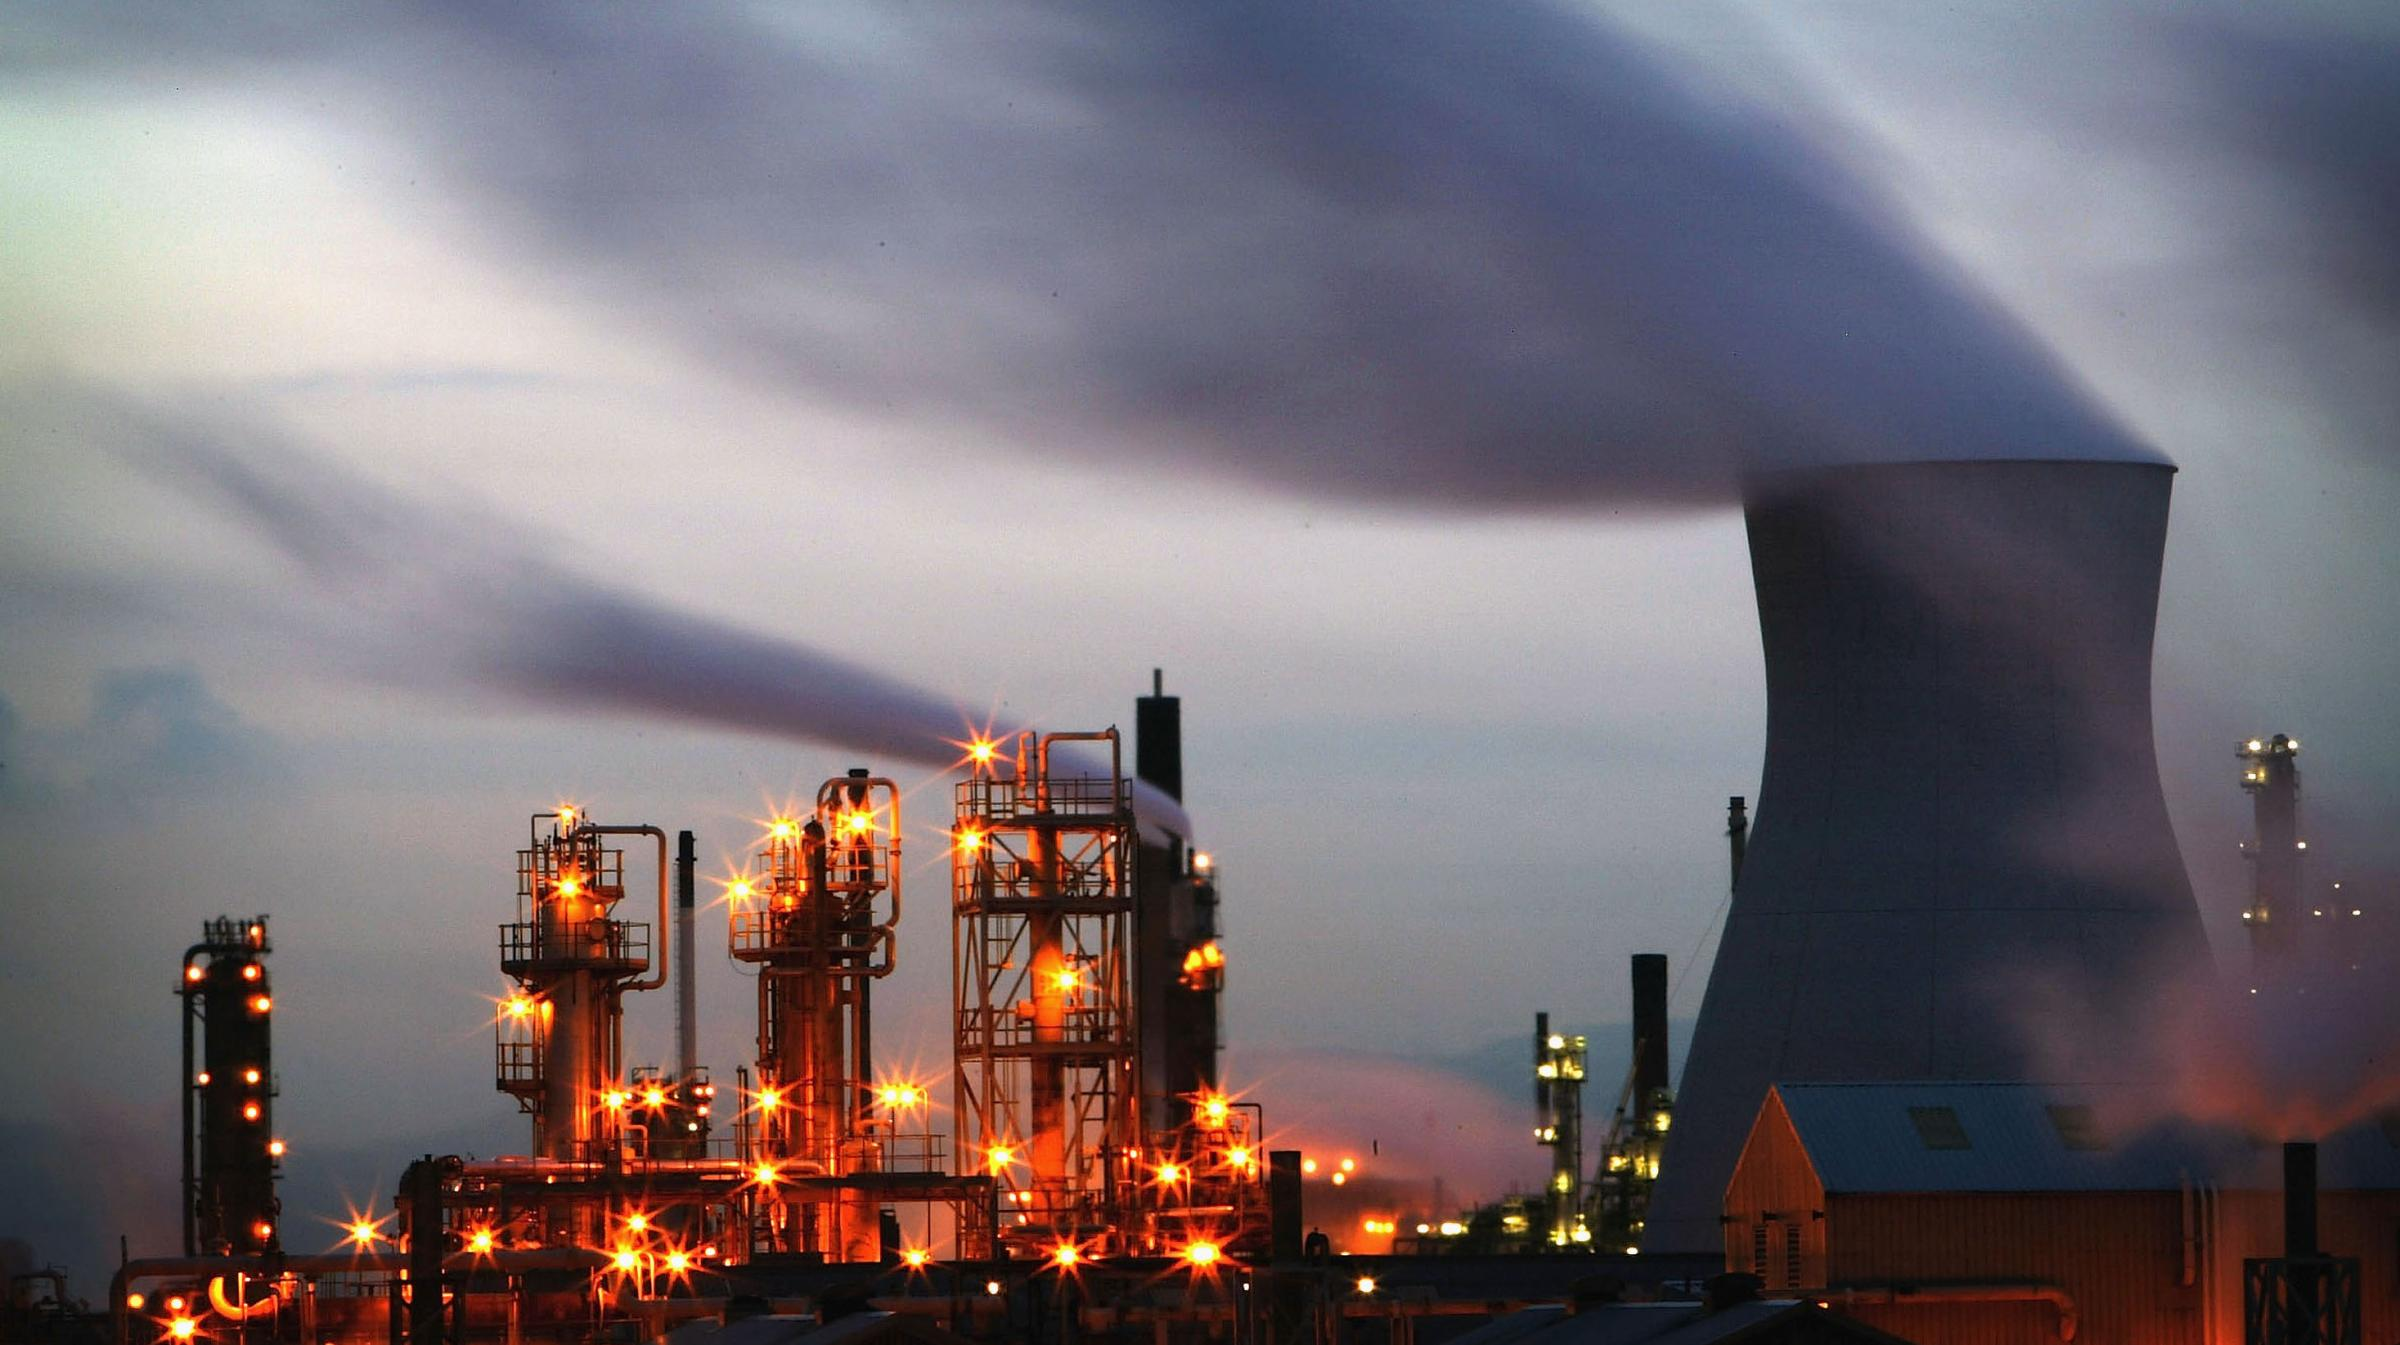 Petroineos refinery at Grangemouth topped the list of polluters